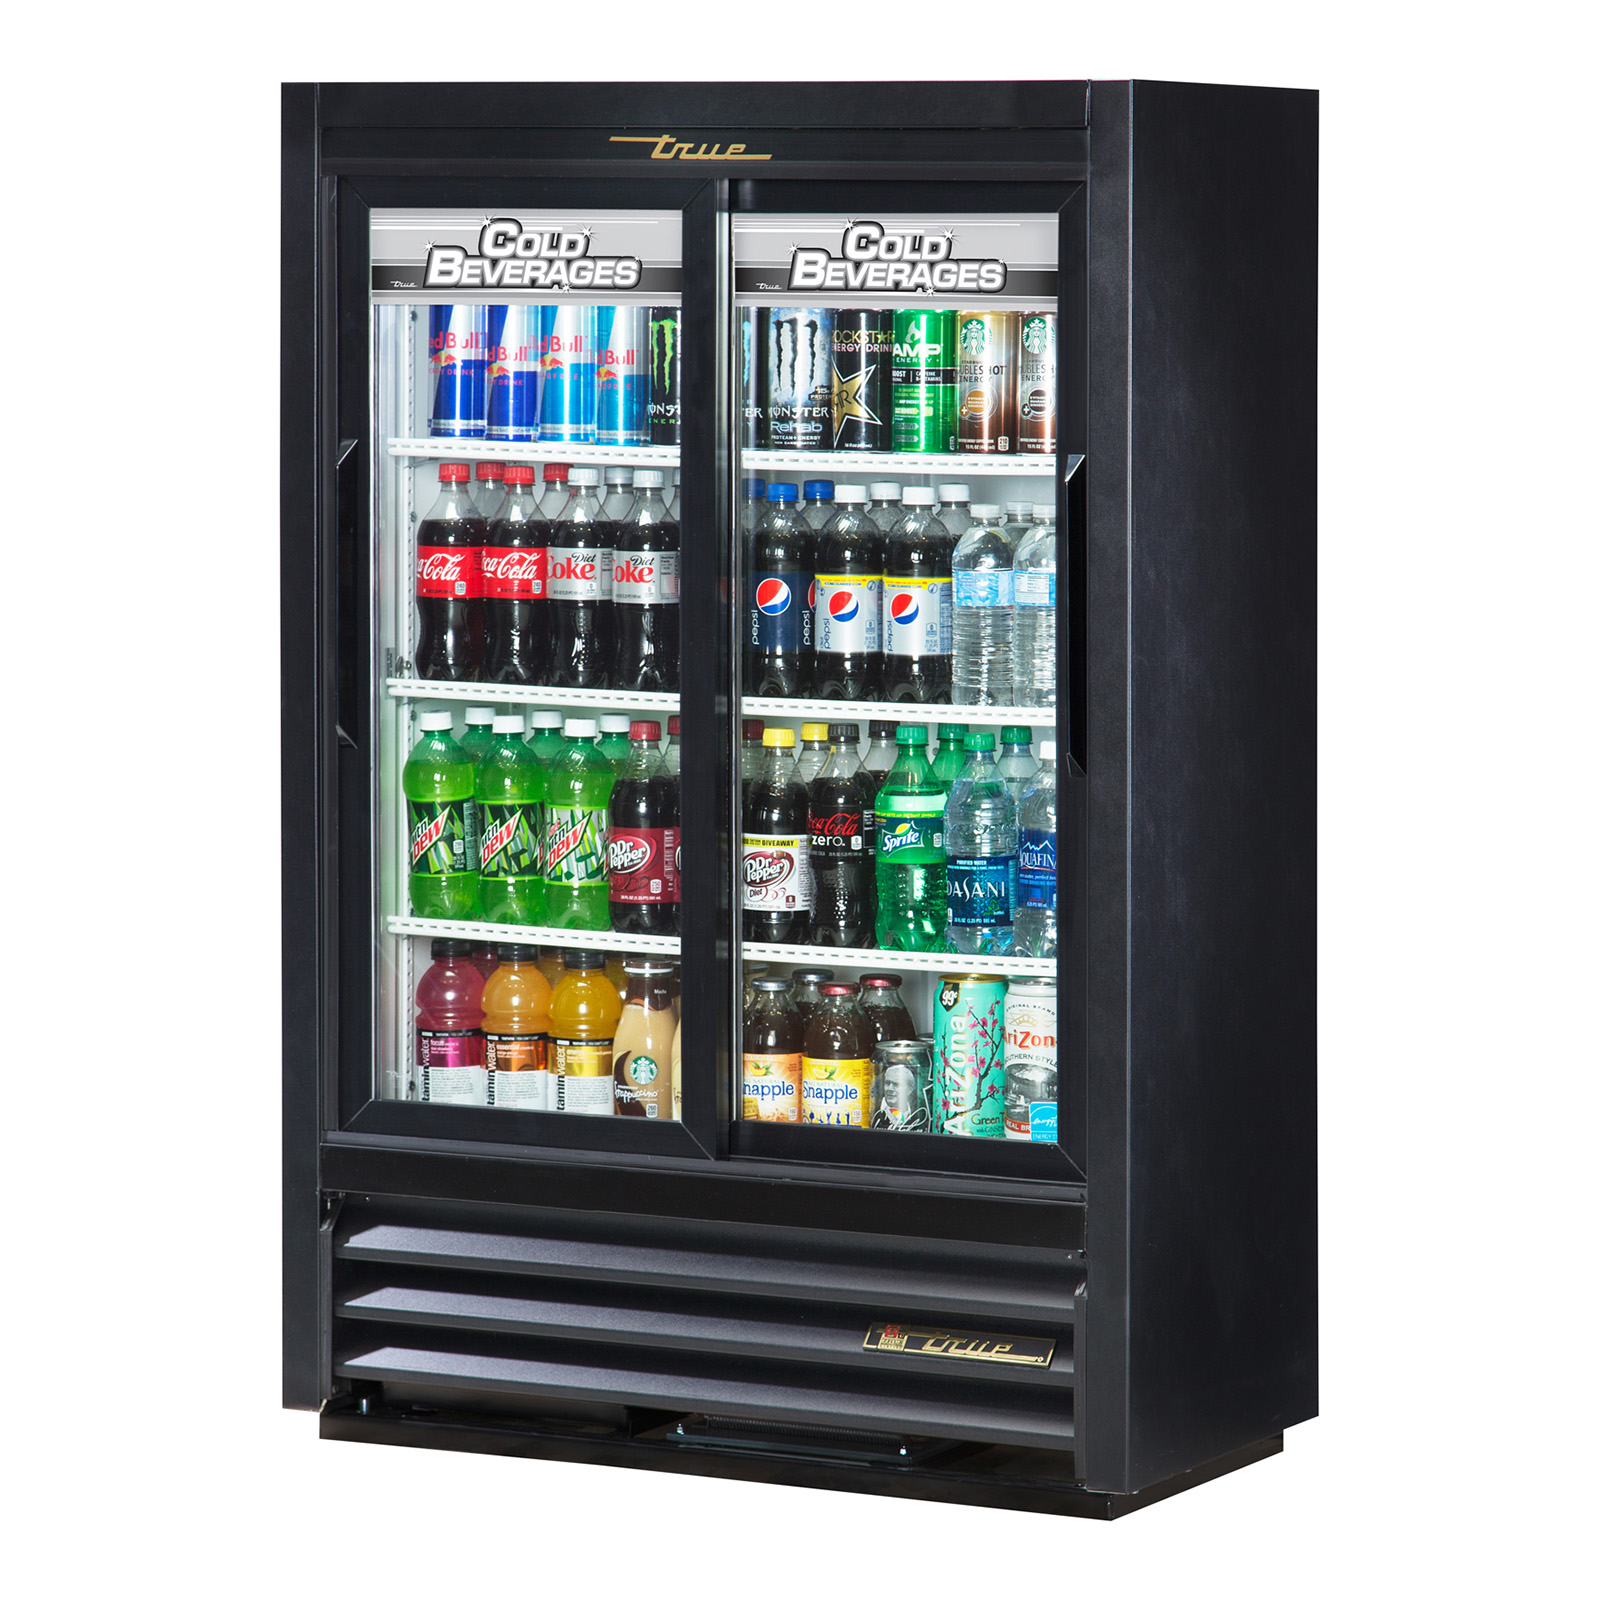 GDM-33SSL-54-LD True - Convenience Store Cooler two-section